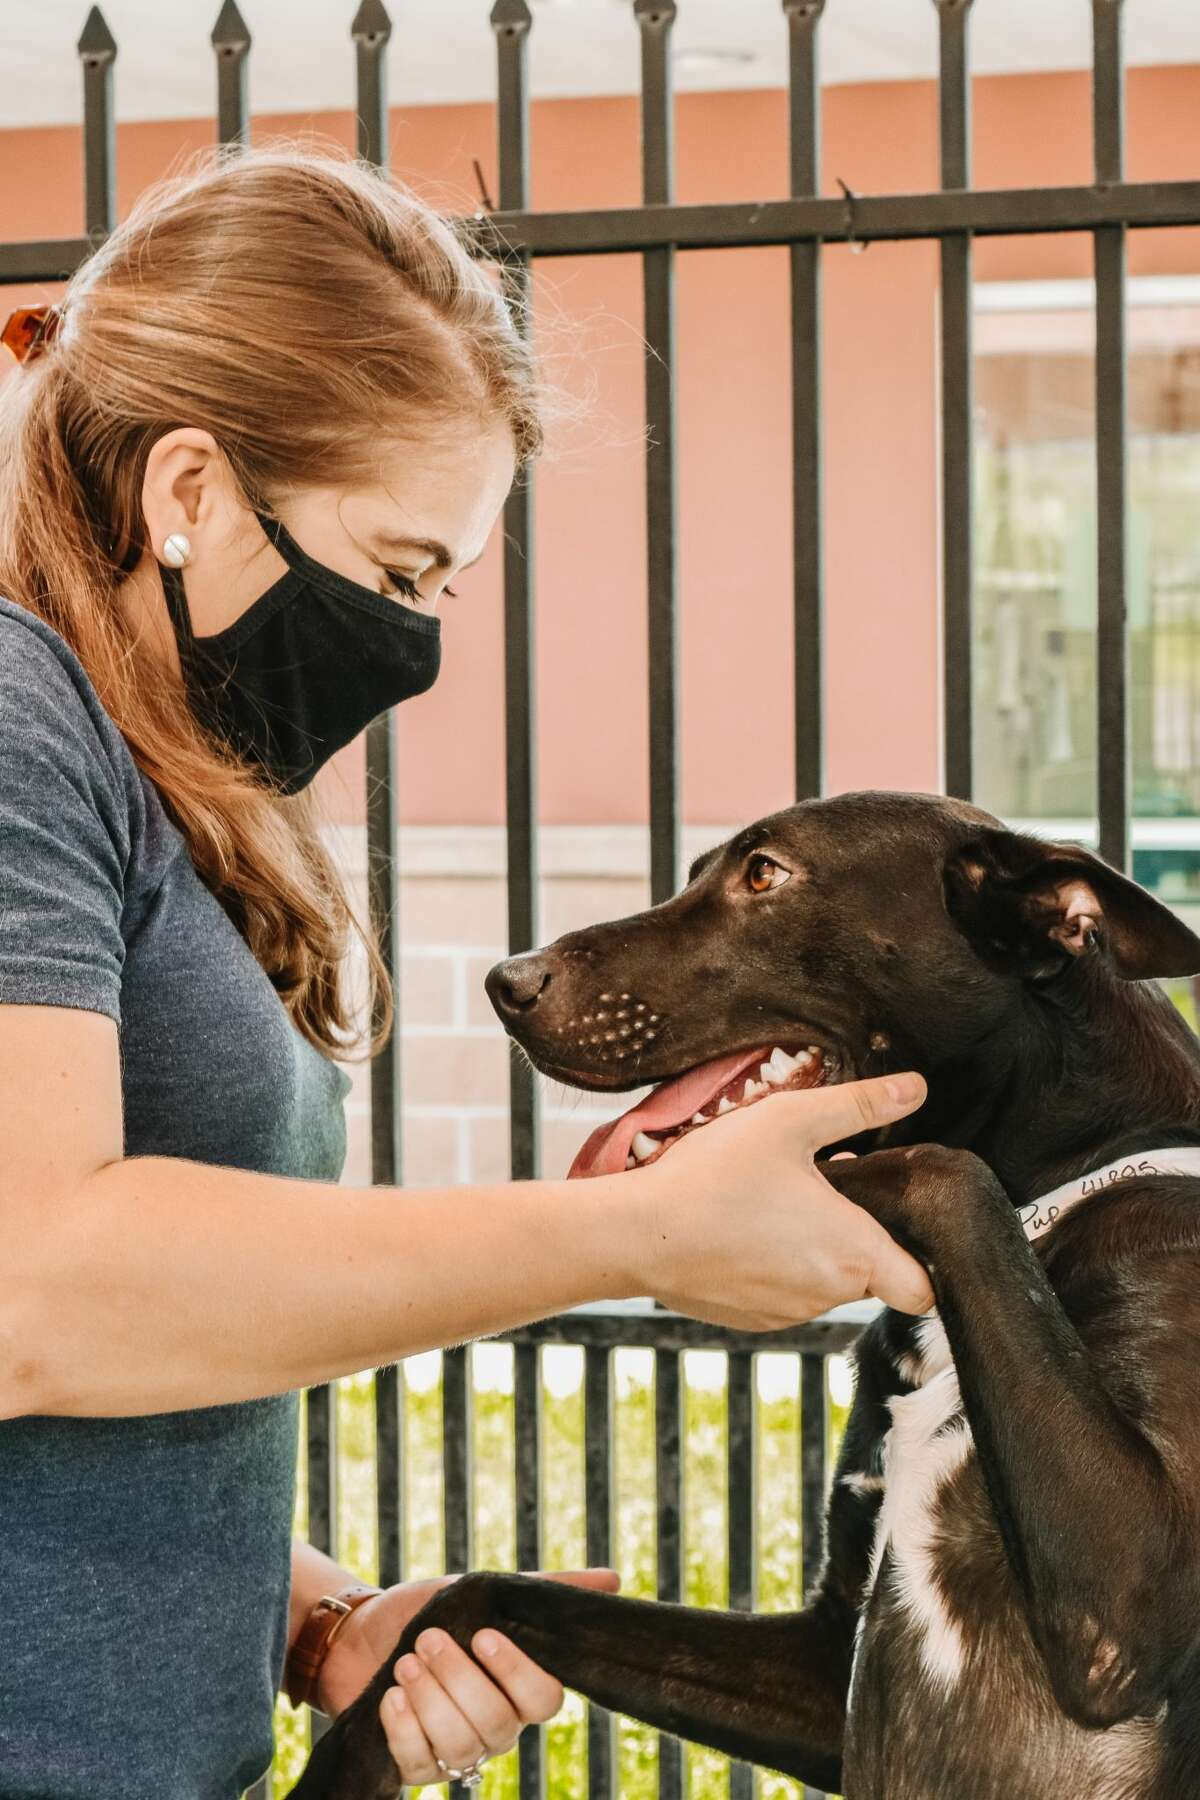 The 12 animals are currently receiving medical treatment and care at San Antonio Pets Alive!'s medical clinic at 9107 Marbach Rd., according to the news release.